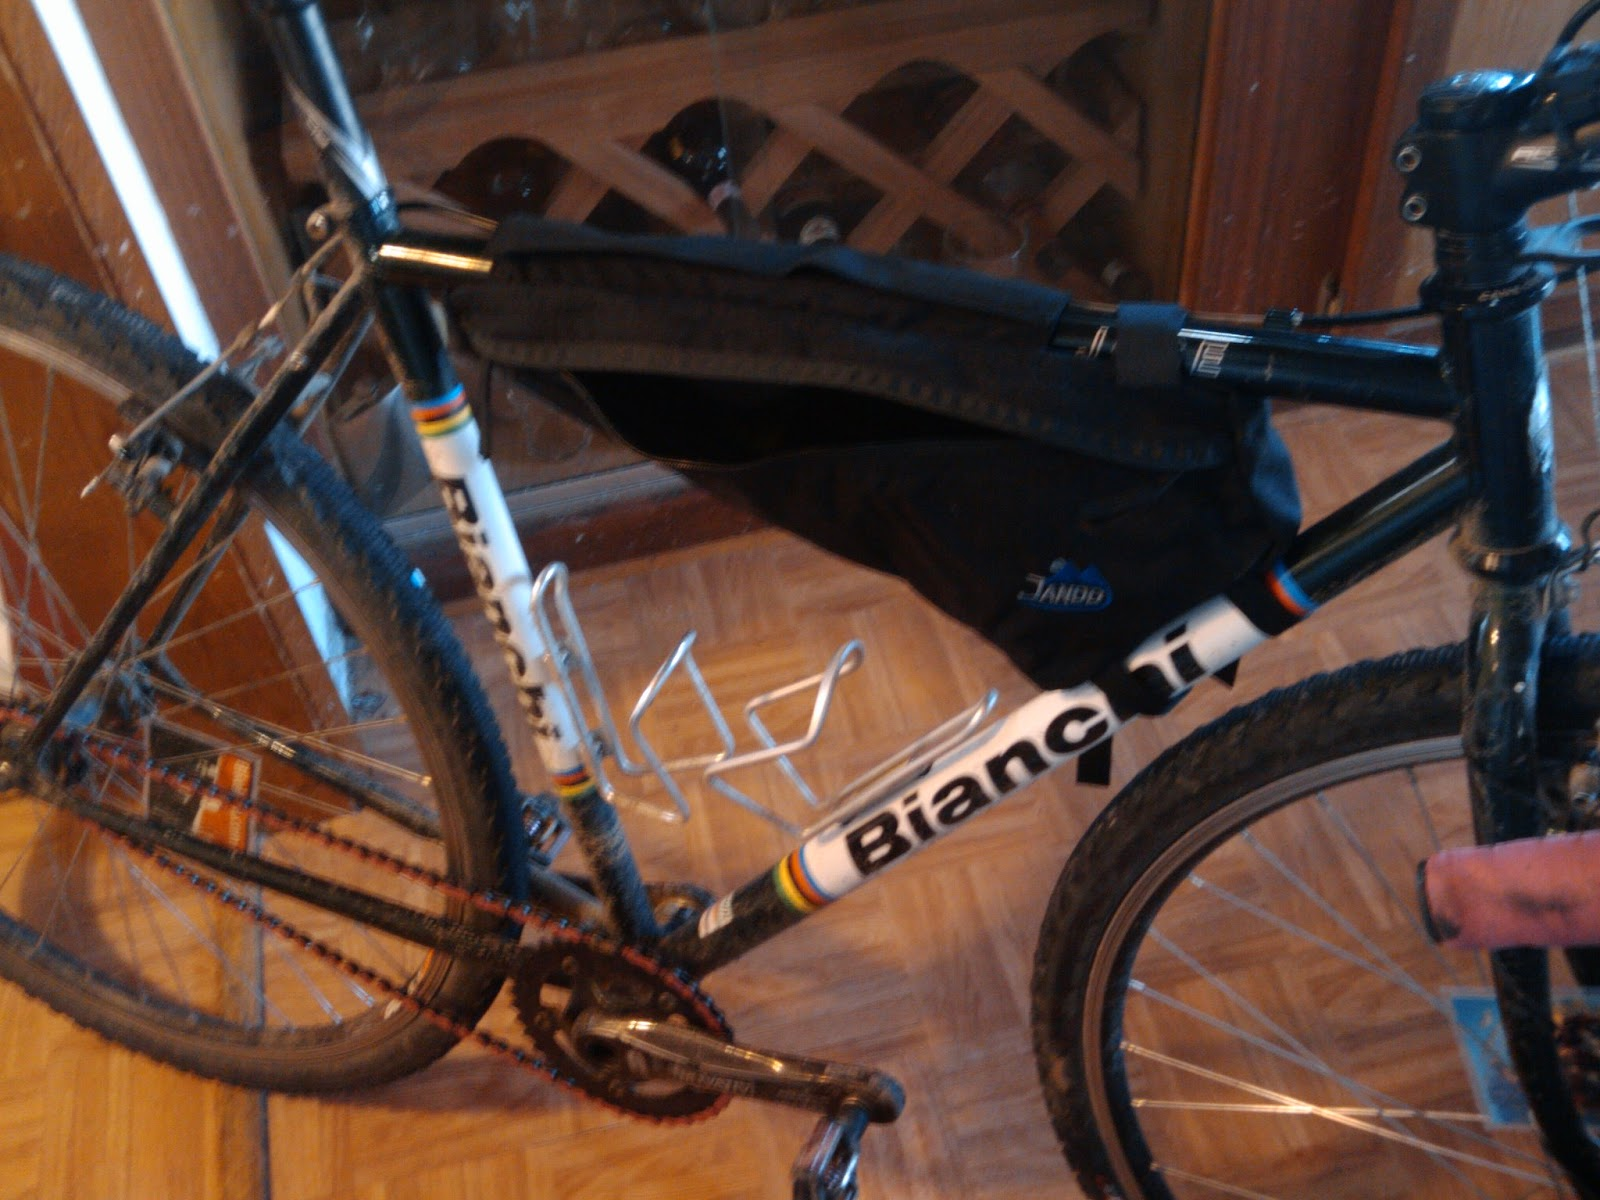 cycling-obsession: Jandd Frame Pack Review